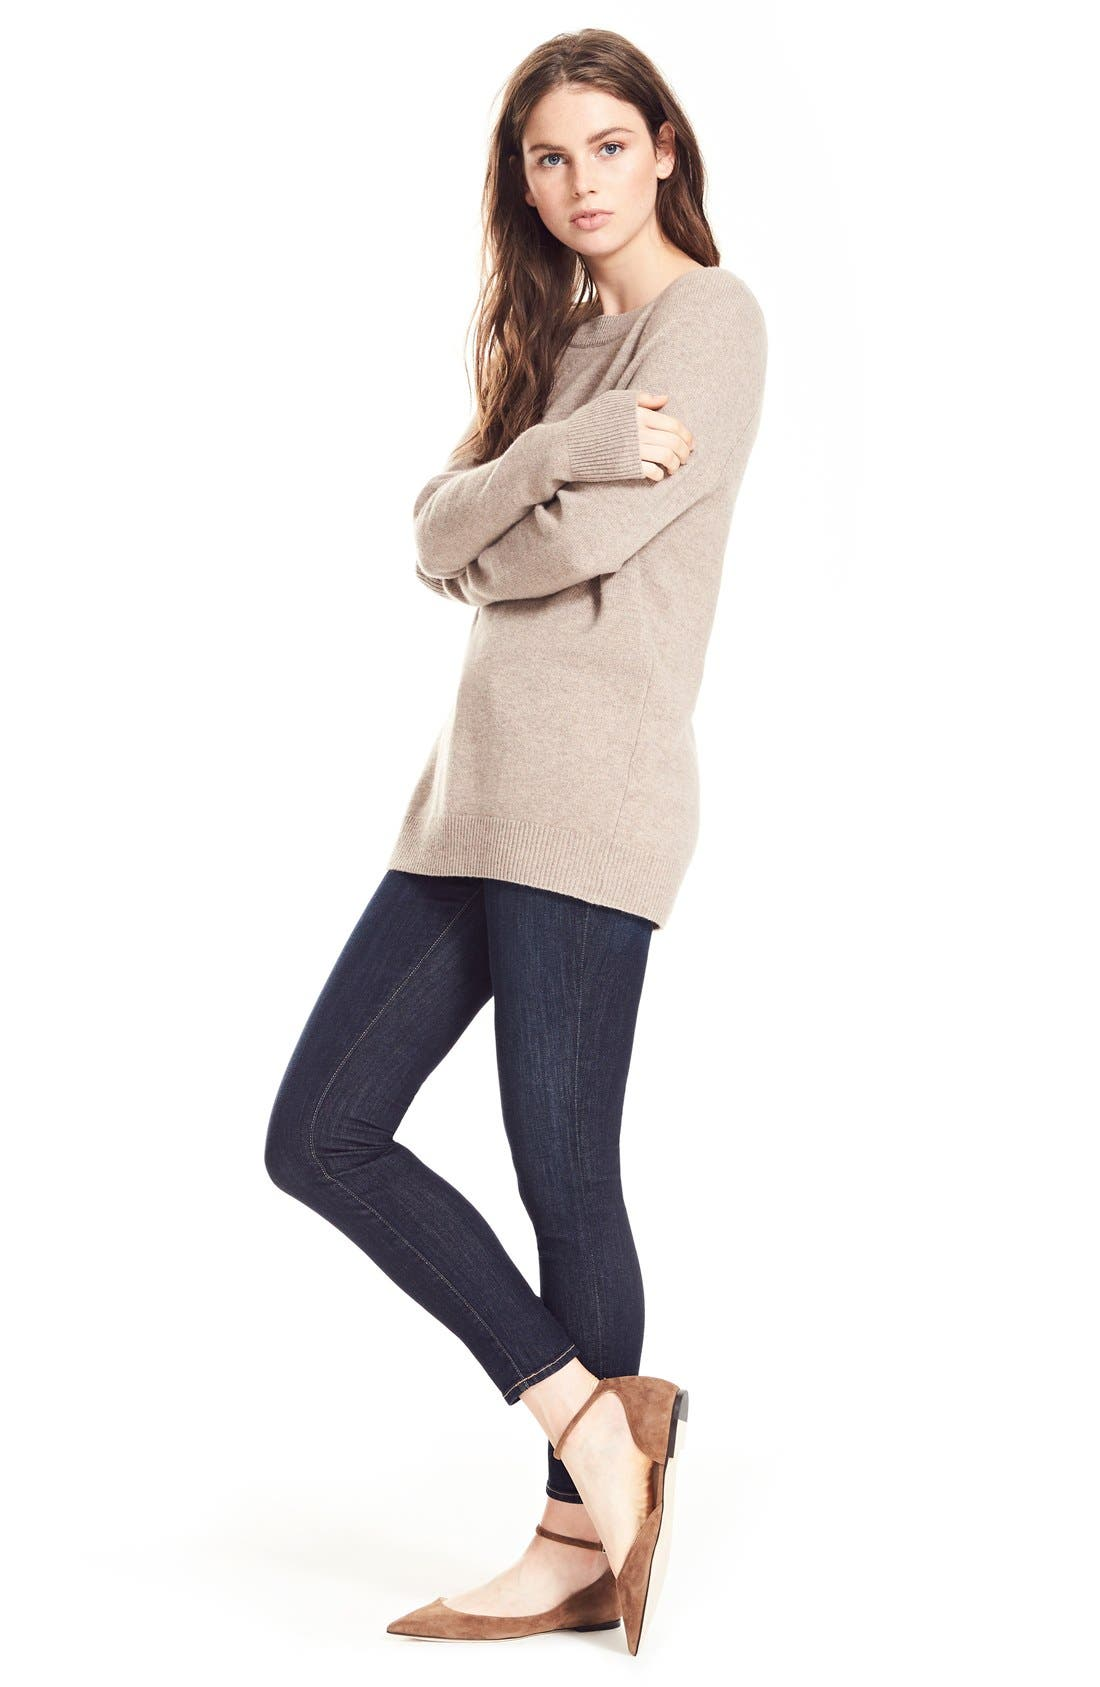 Le Skinny de Jeanne Jeans,                             Alternate thumbnail 10, color,                             QUEENSWAY